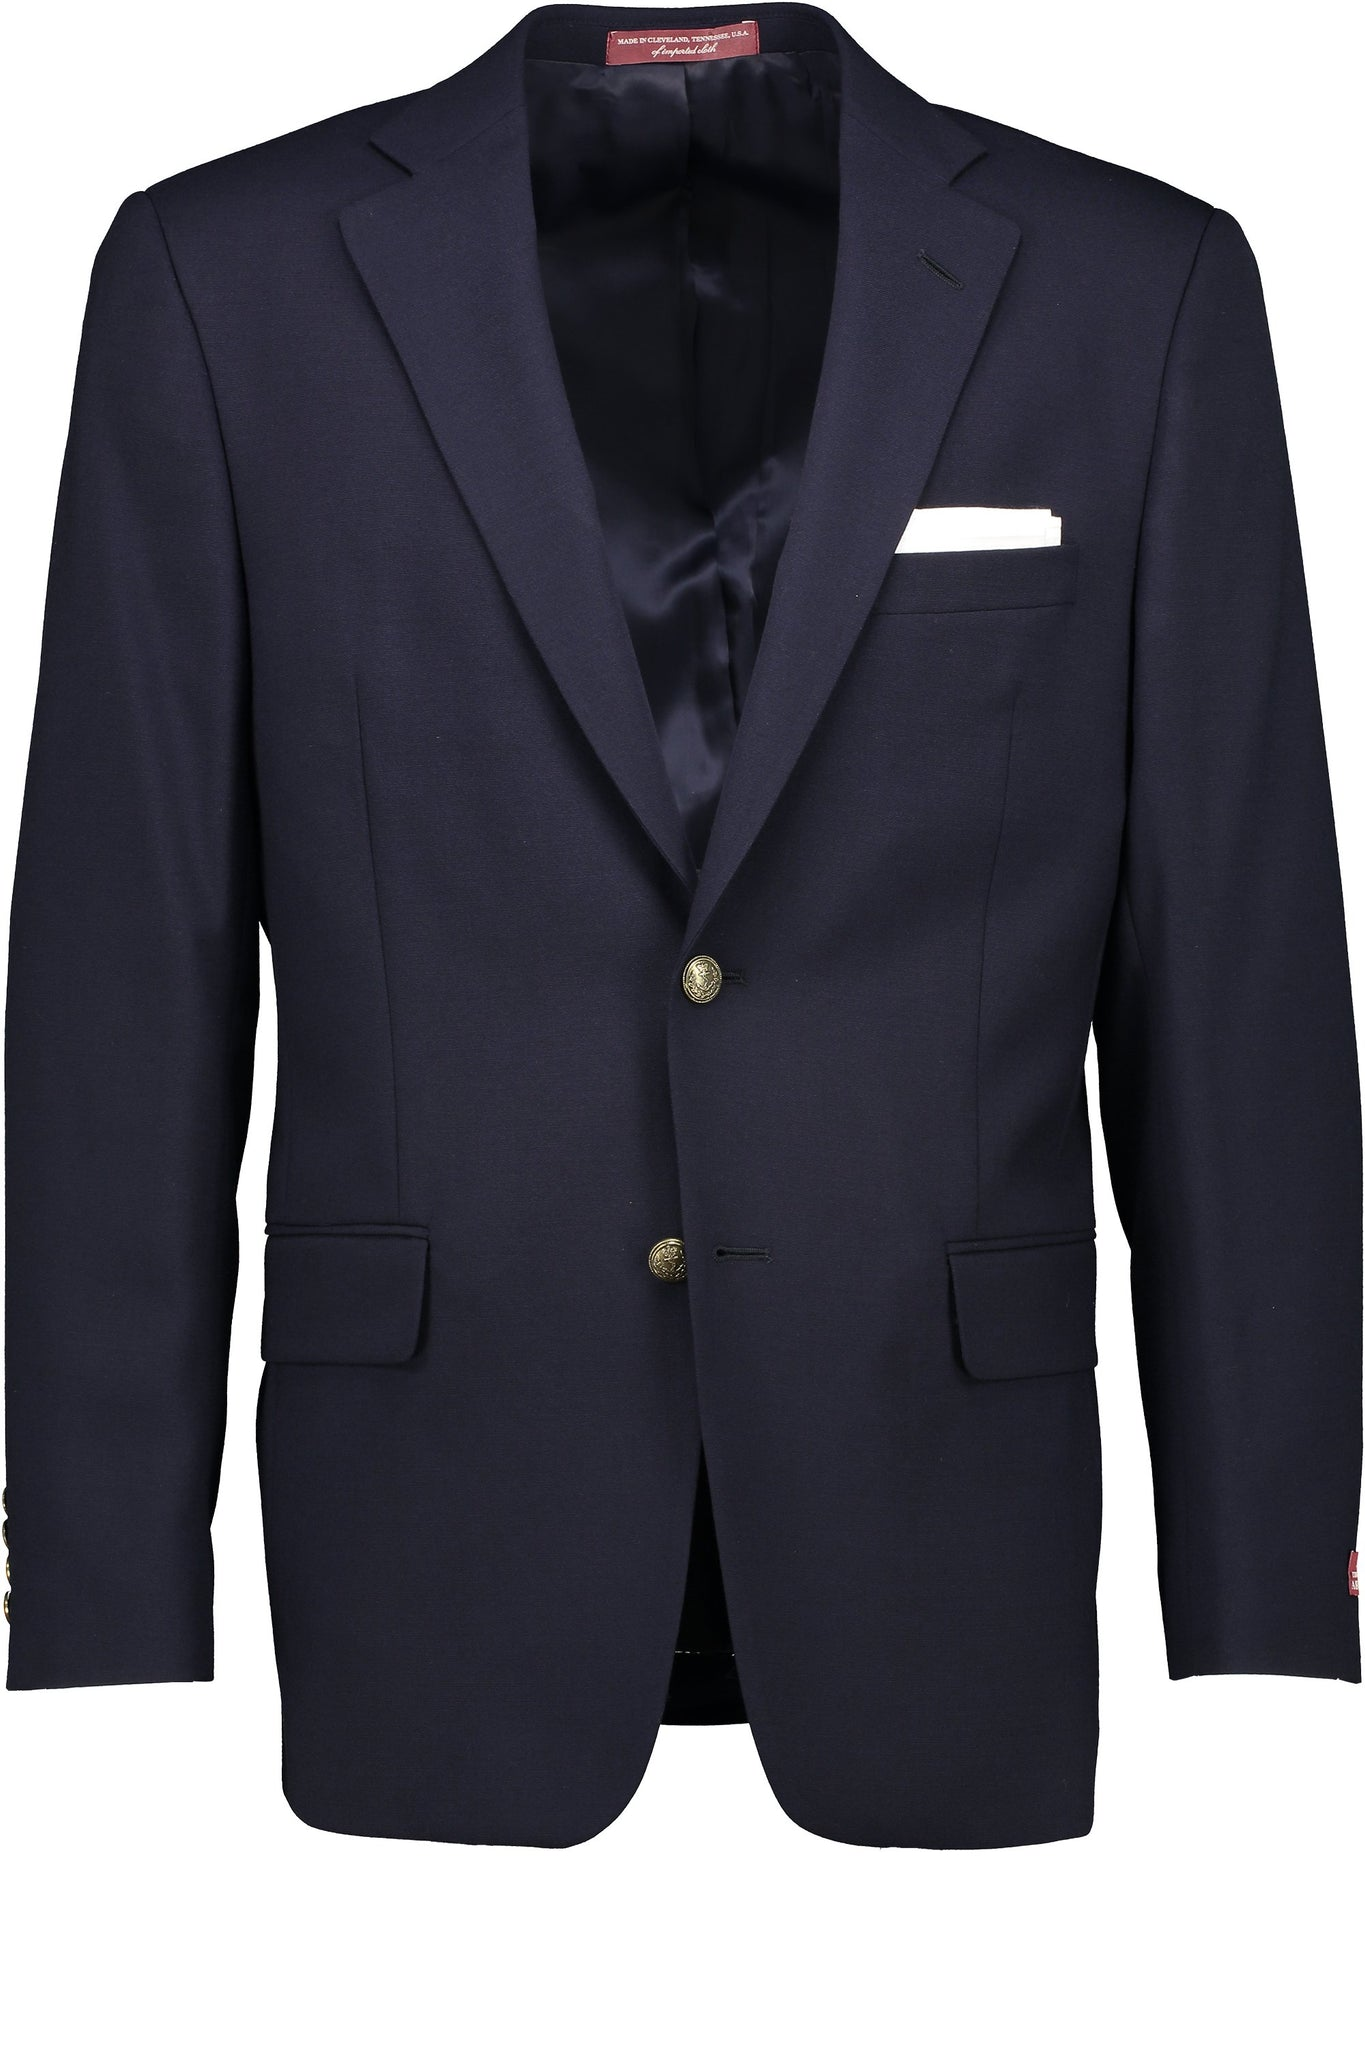 Classic Fit Tropical Wool Navy Blazer -  Hardwick.com